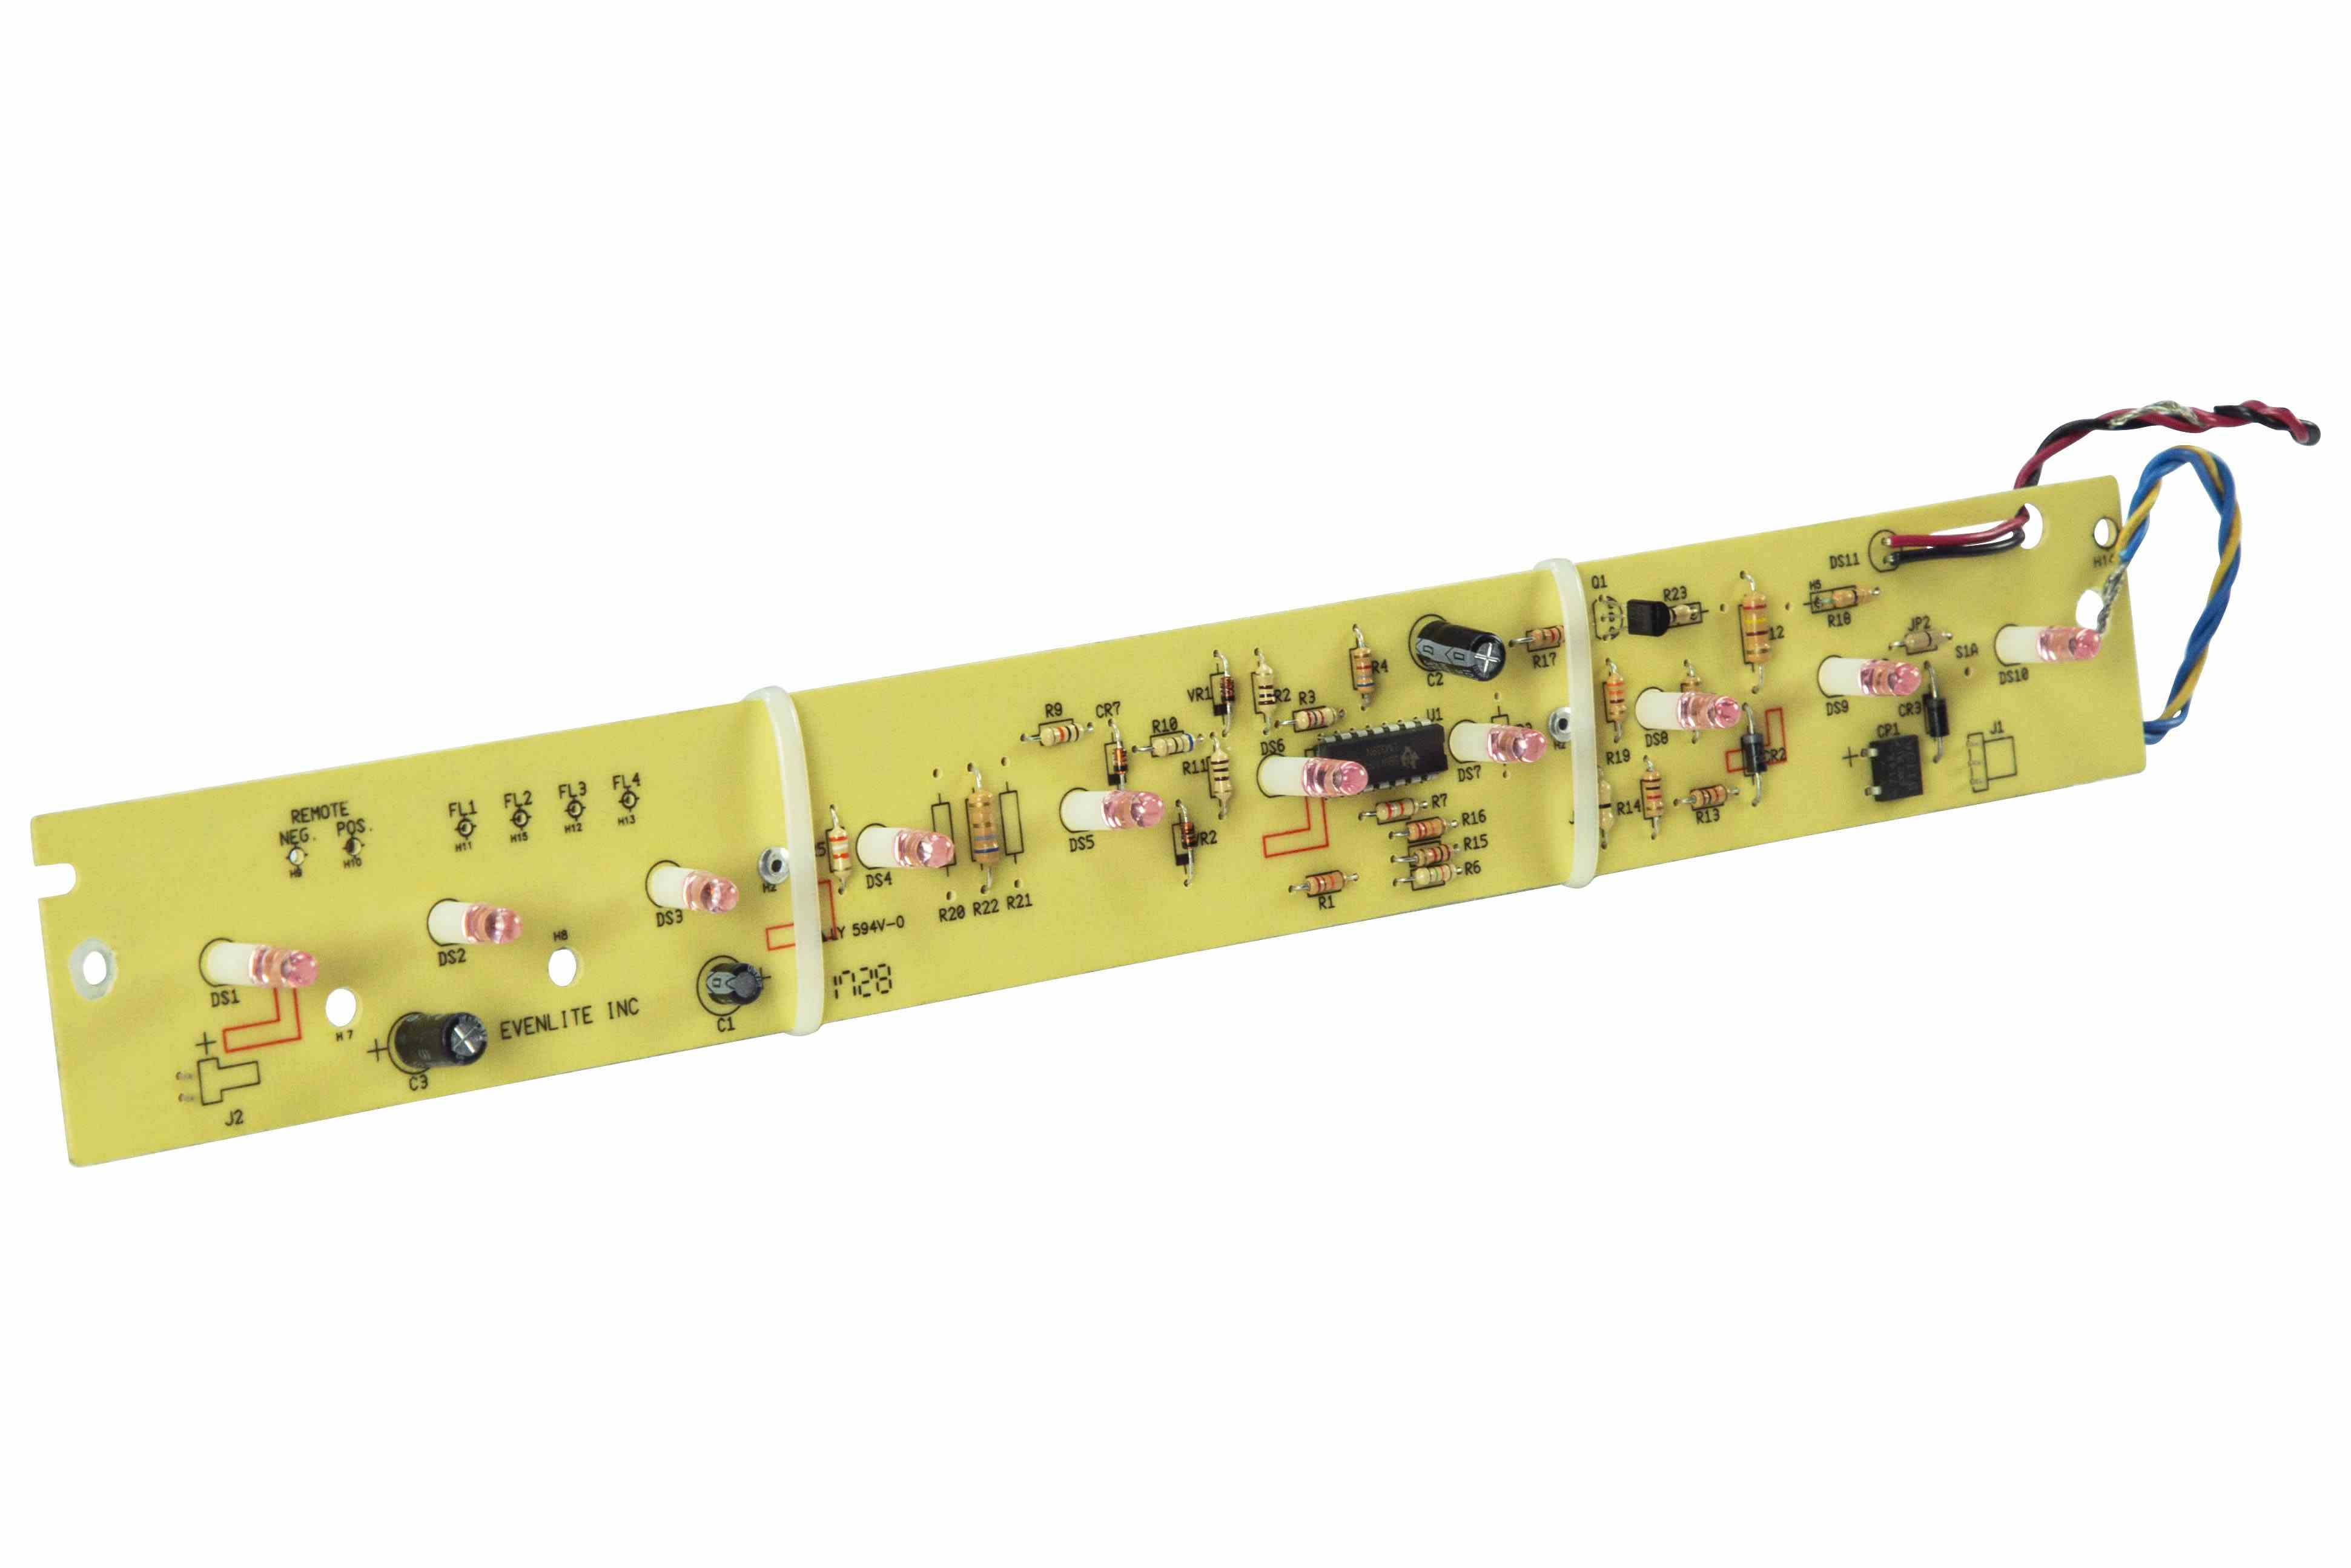 Replacement Main Control Circuit Board for EXP-EXT-3W